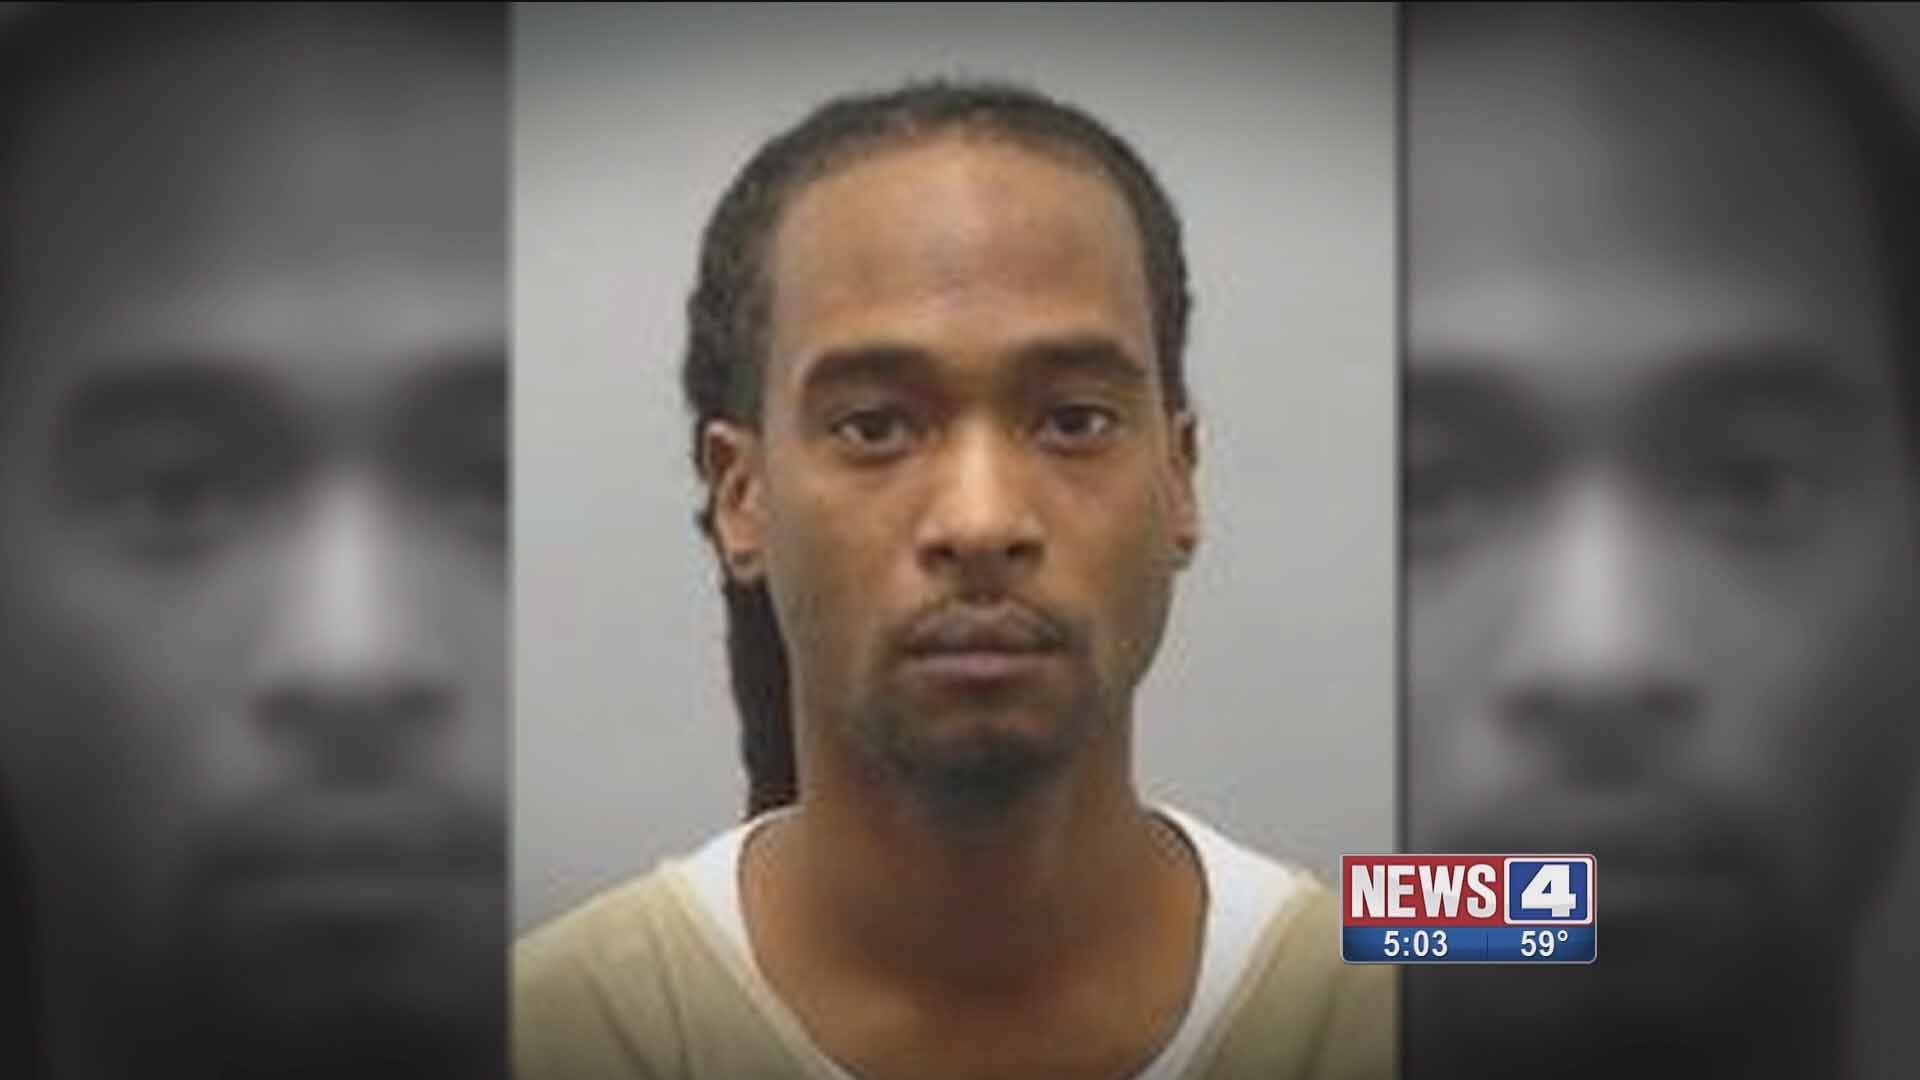 Jo'von Mitchell is charged with armed criminal action, assault on a law enforcement officer and unalwful use of a weapon. He allegedly shot an officer in Castle Point late Thursday night. Credit: St. Louis County PD